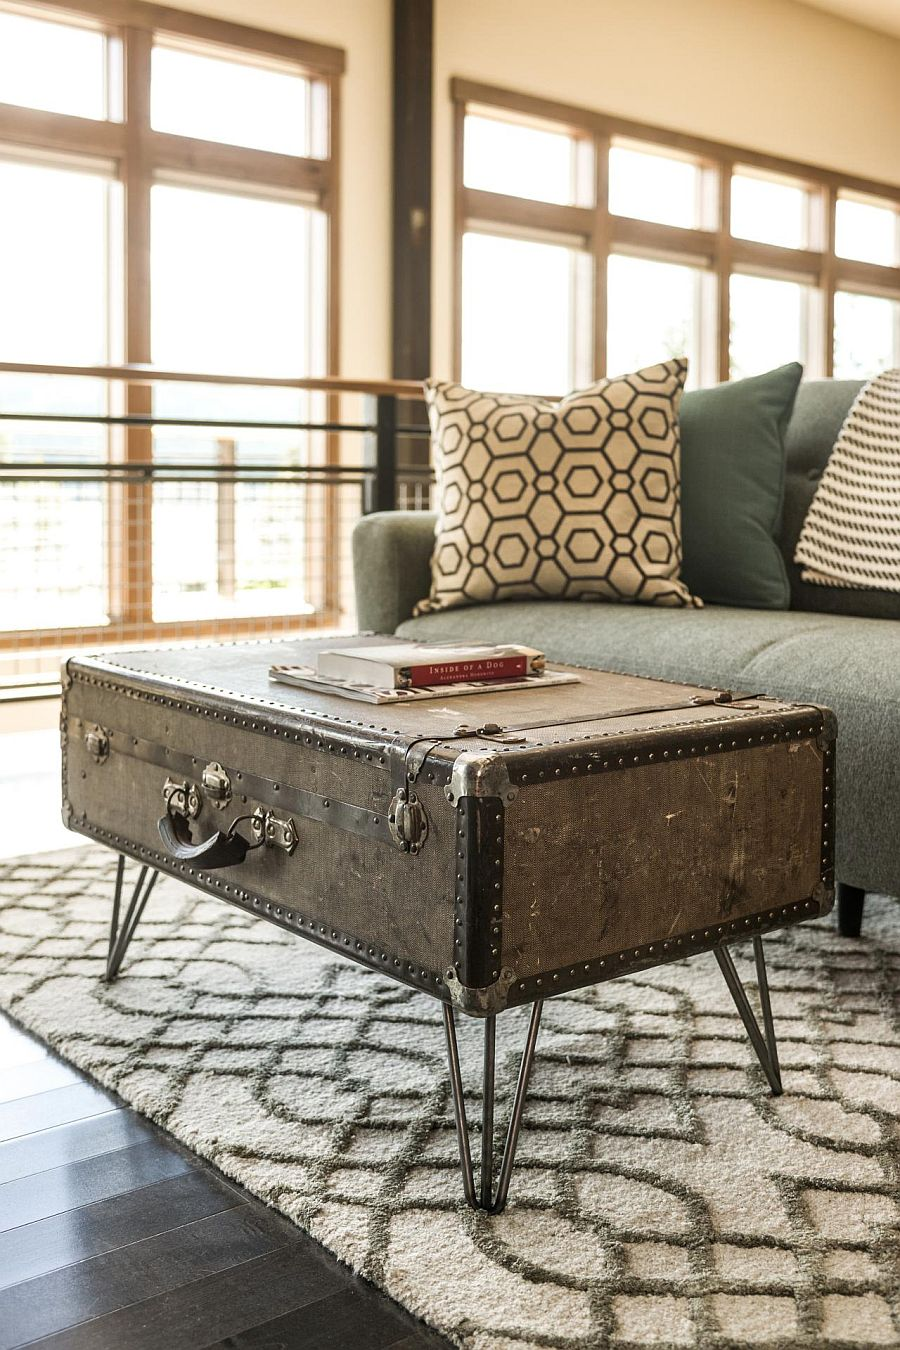 Fabulous DIY upcycled suitcase coffee table